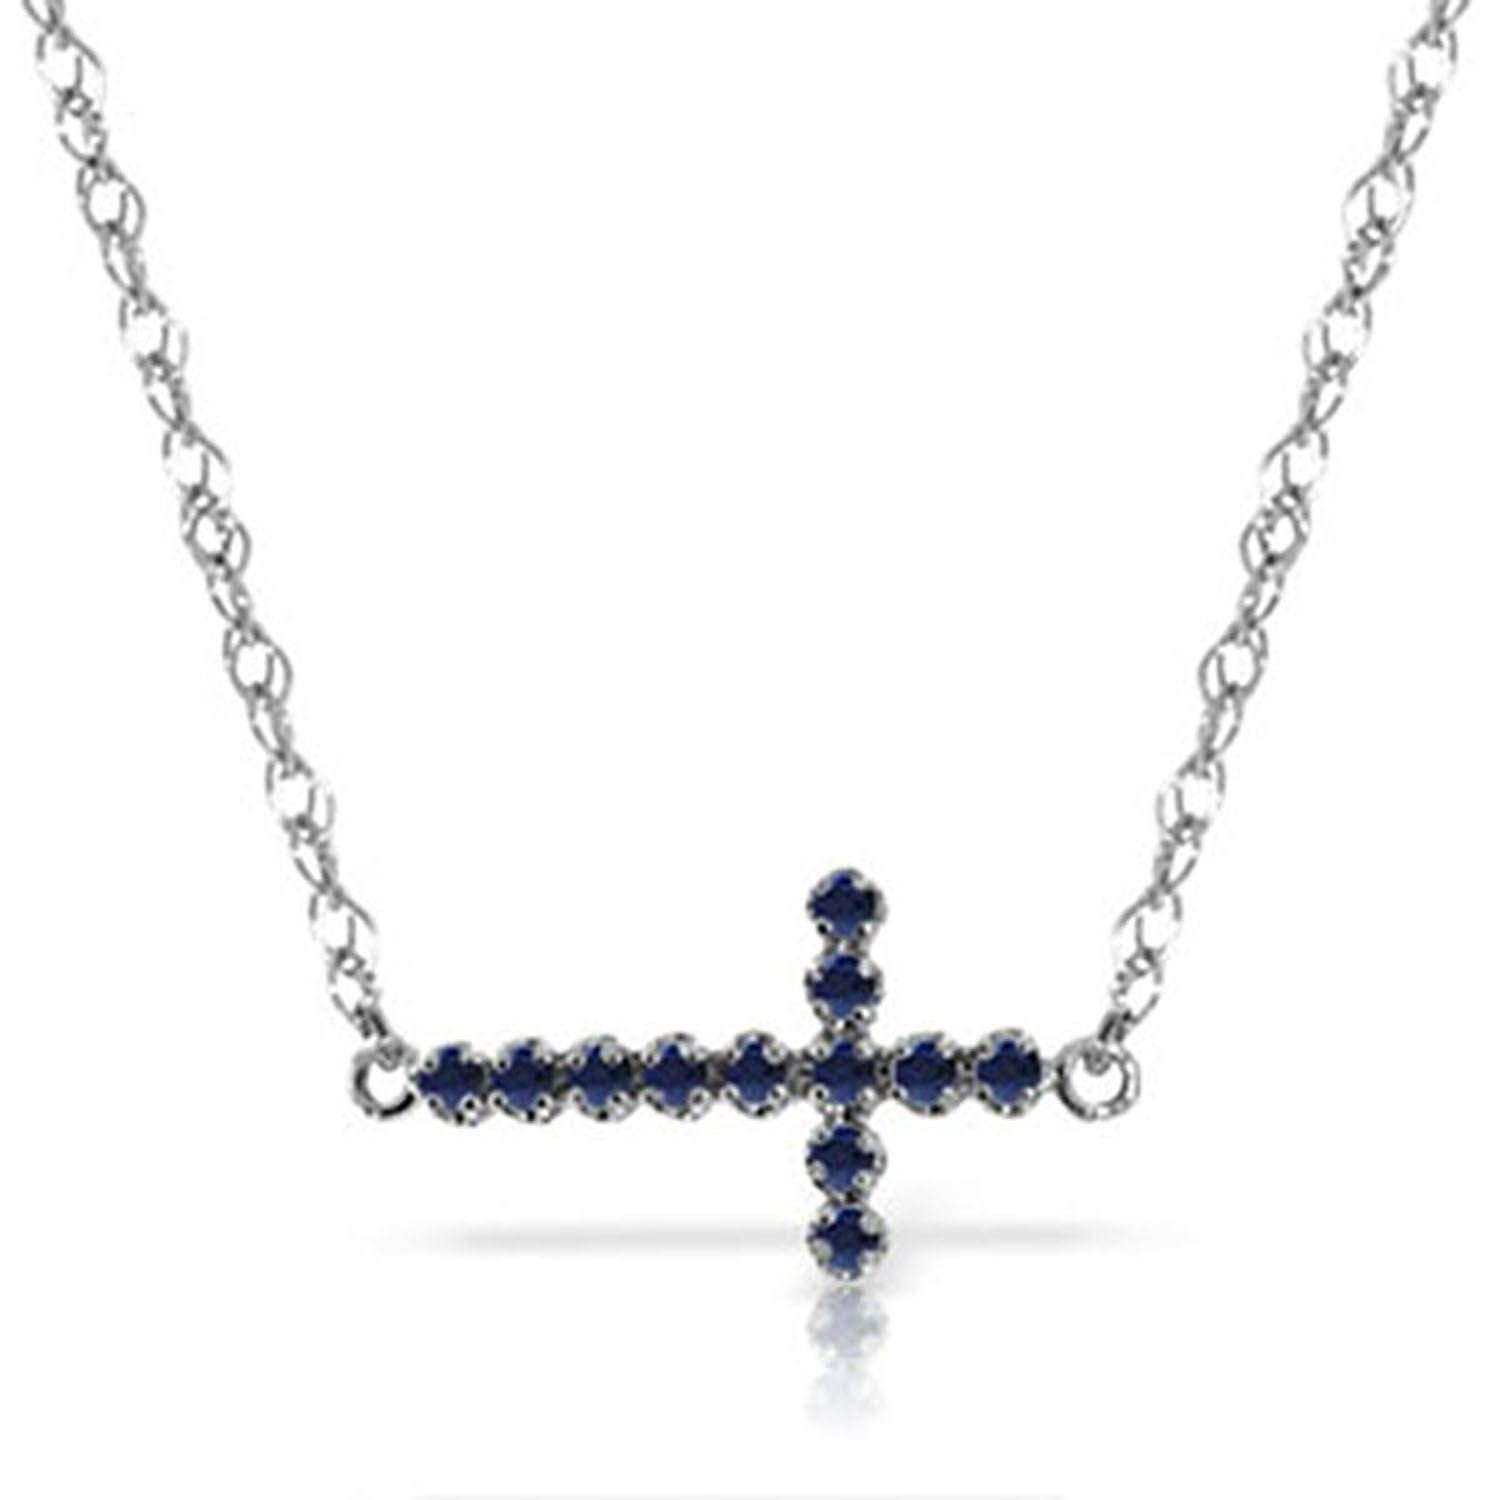 ALARRI 0.3 CTW 14K Solid White Gold Love Doesn't Take Offense Sapphire Necklace with 20 Inch Chain Length